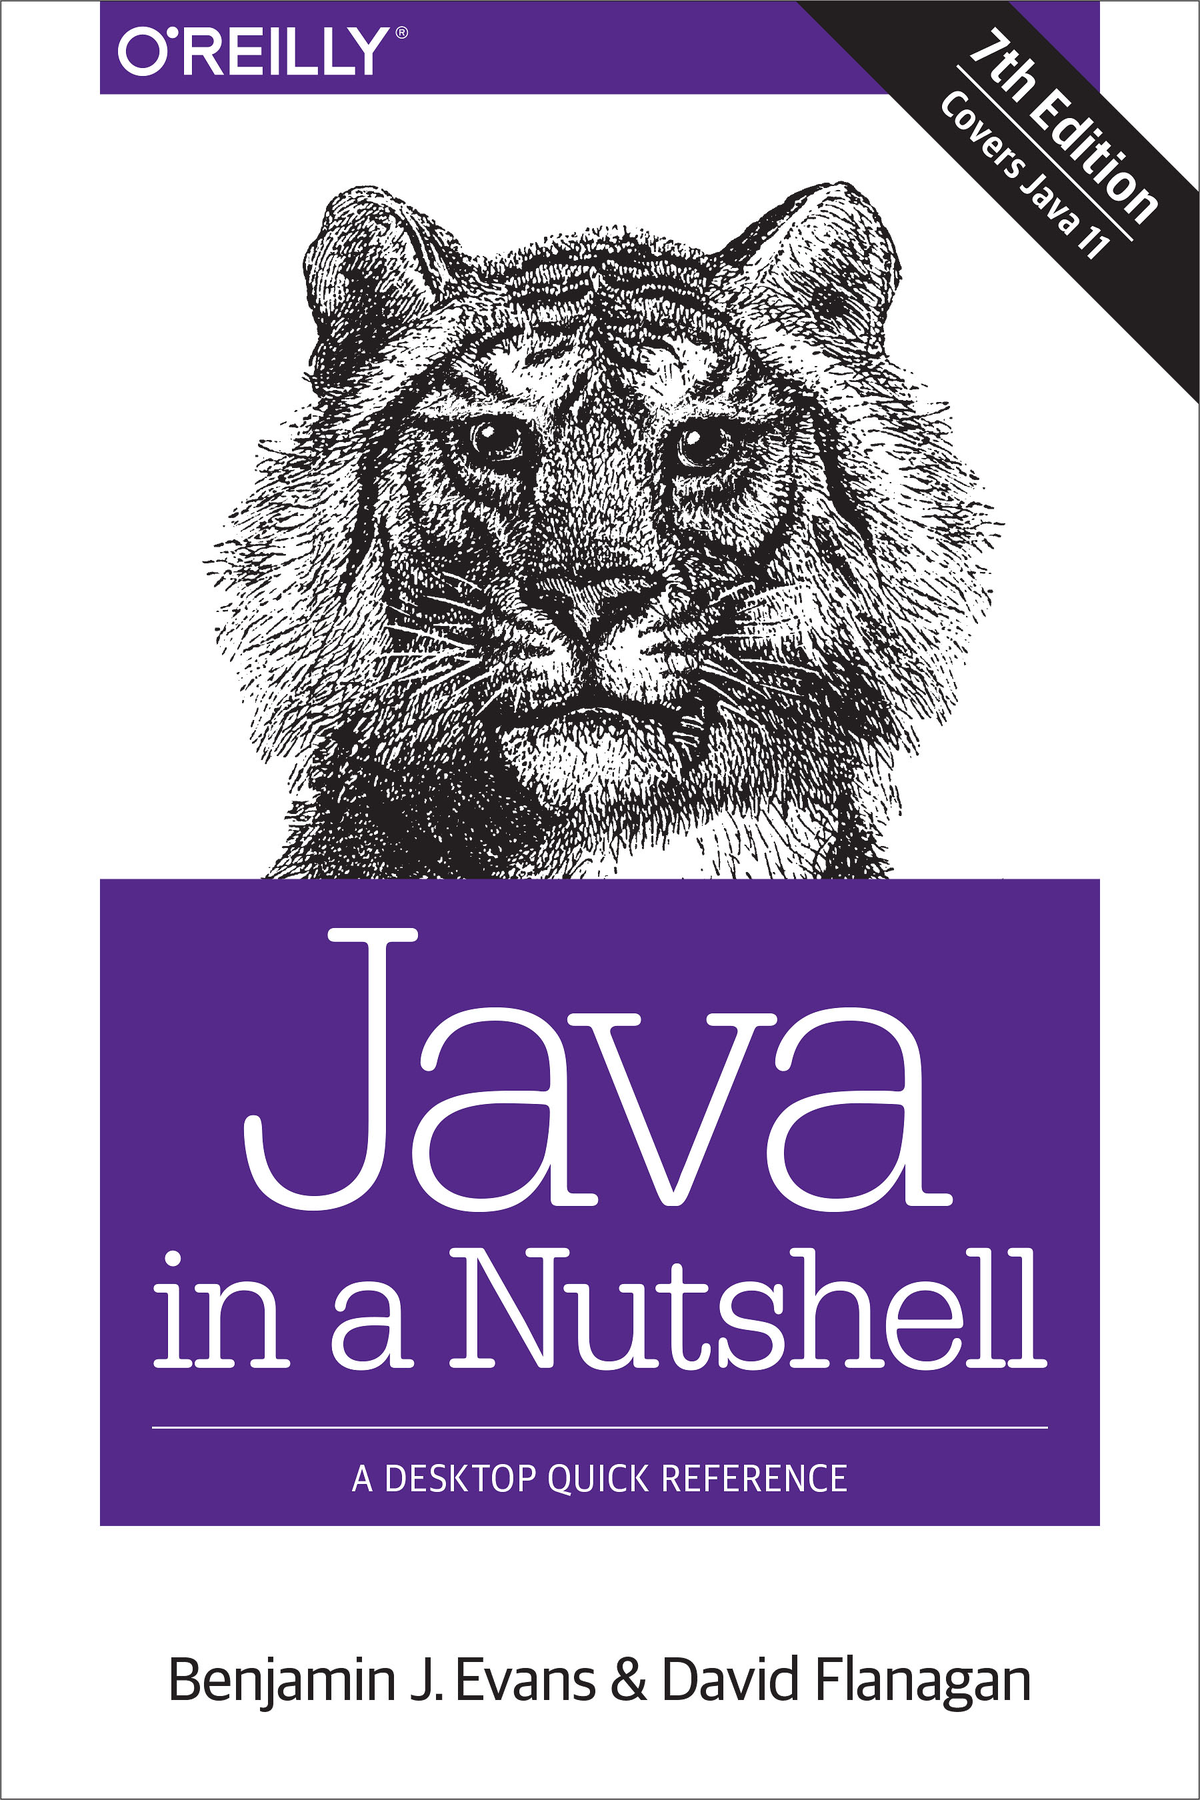 Java Reference Guide Pdf